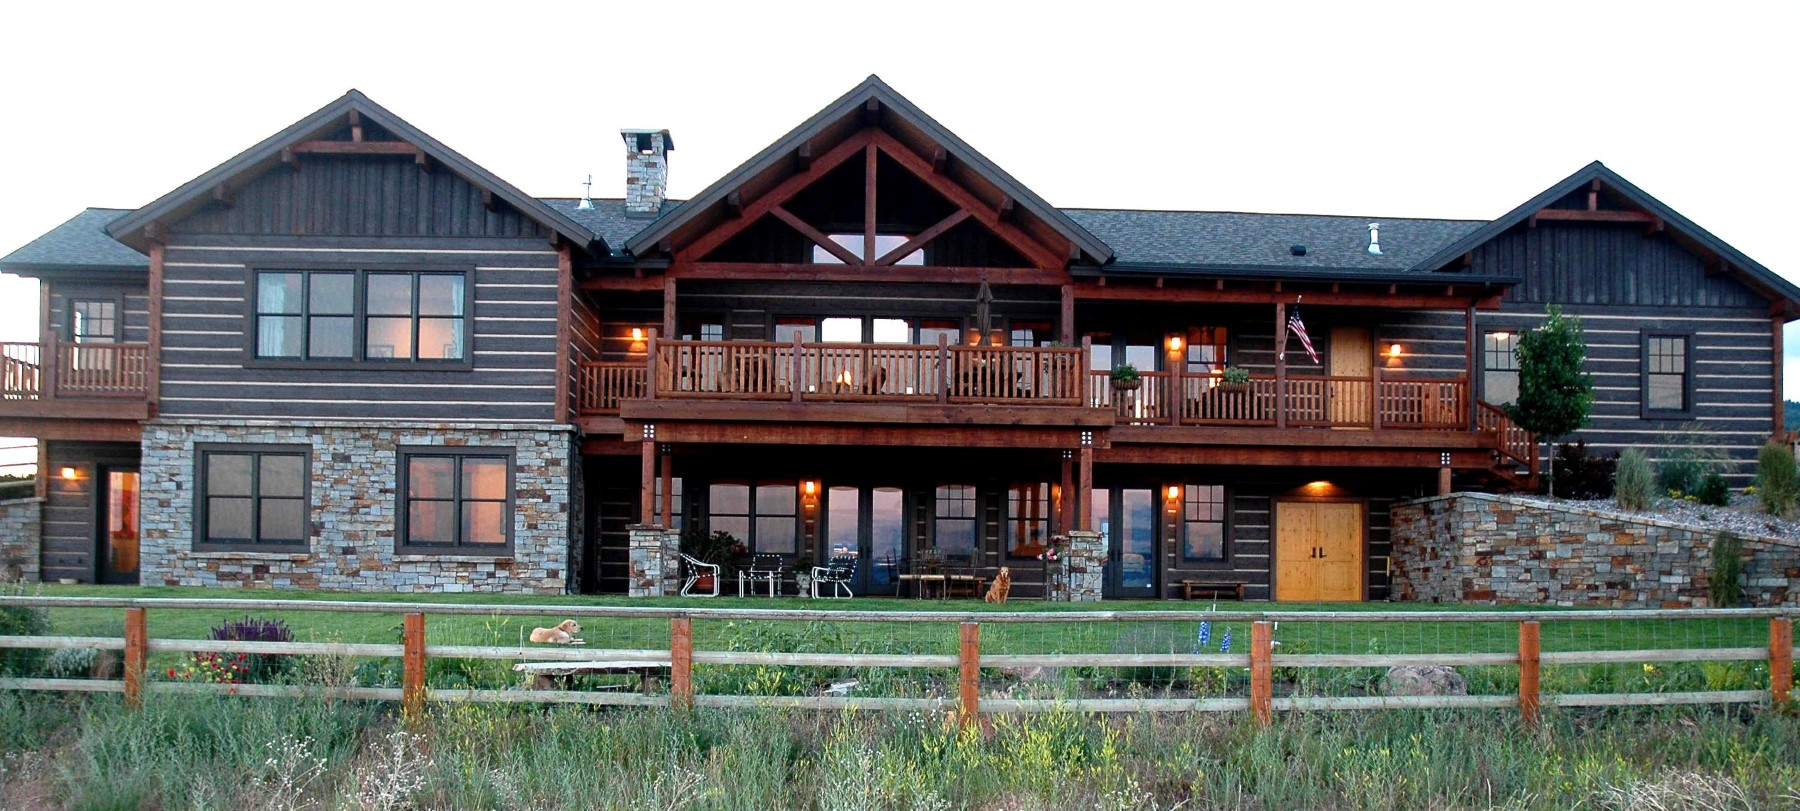 Single Family Home for Sale at Sapphire Ridge Ranch 2062 Hawks Peak Dr Florence, Montana 59833 United States